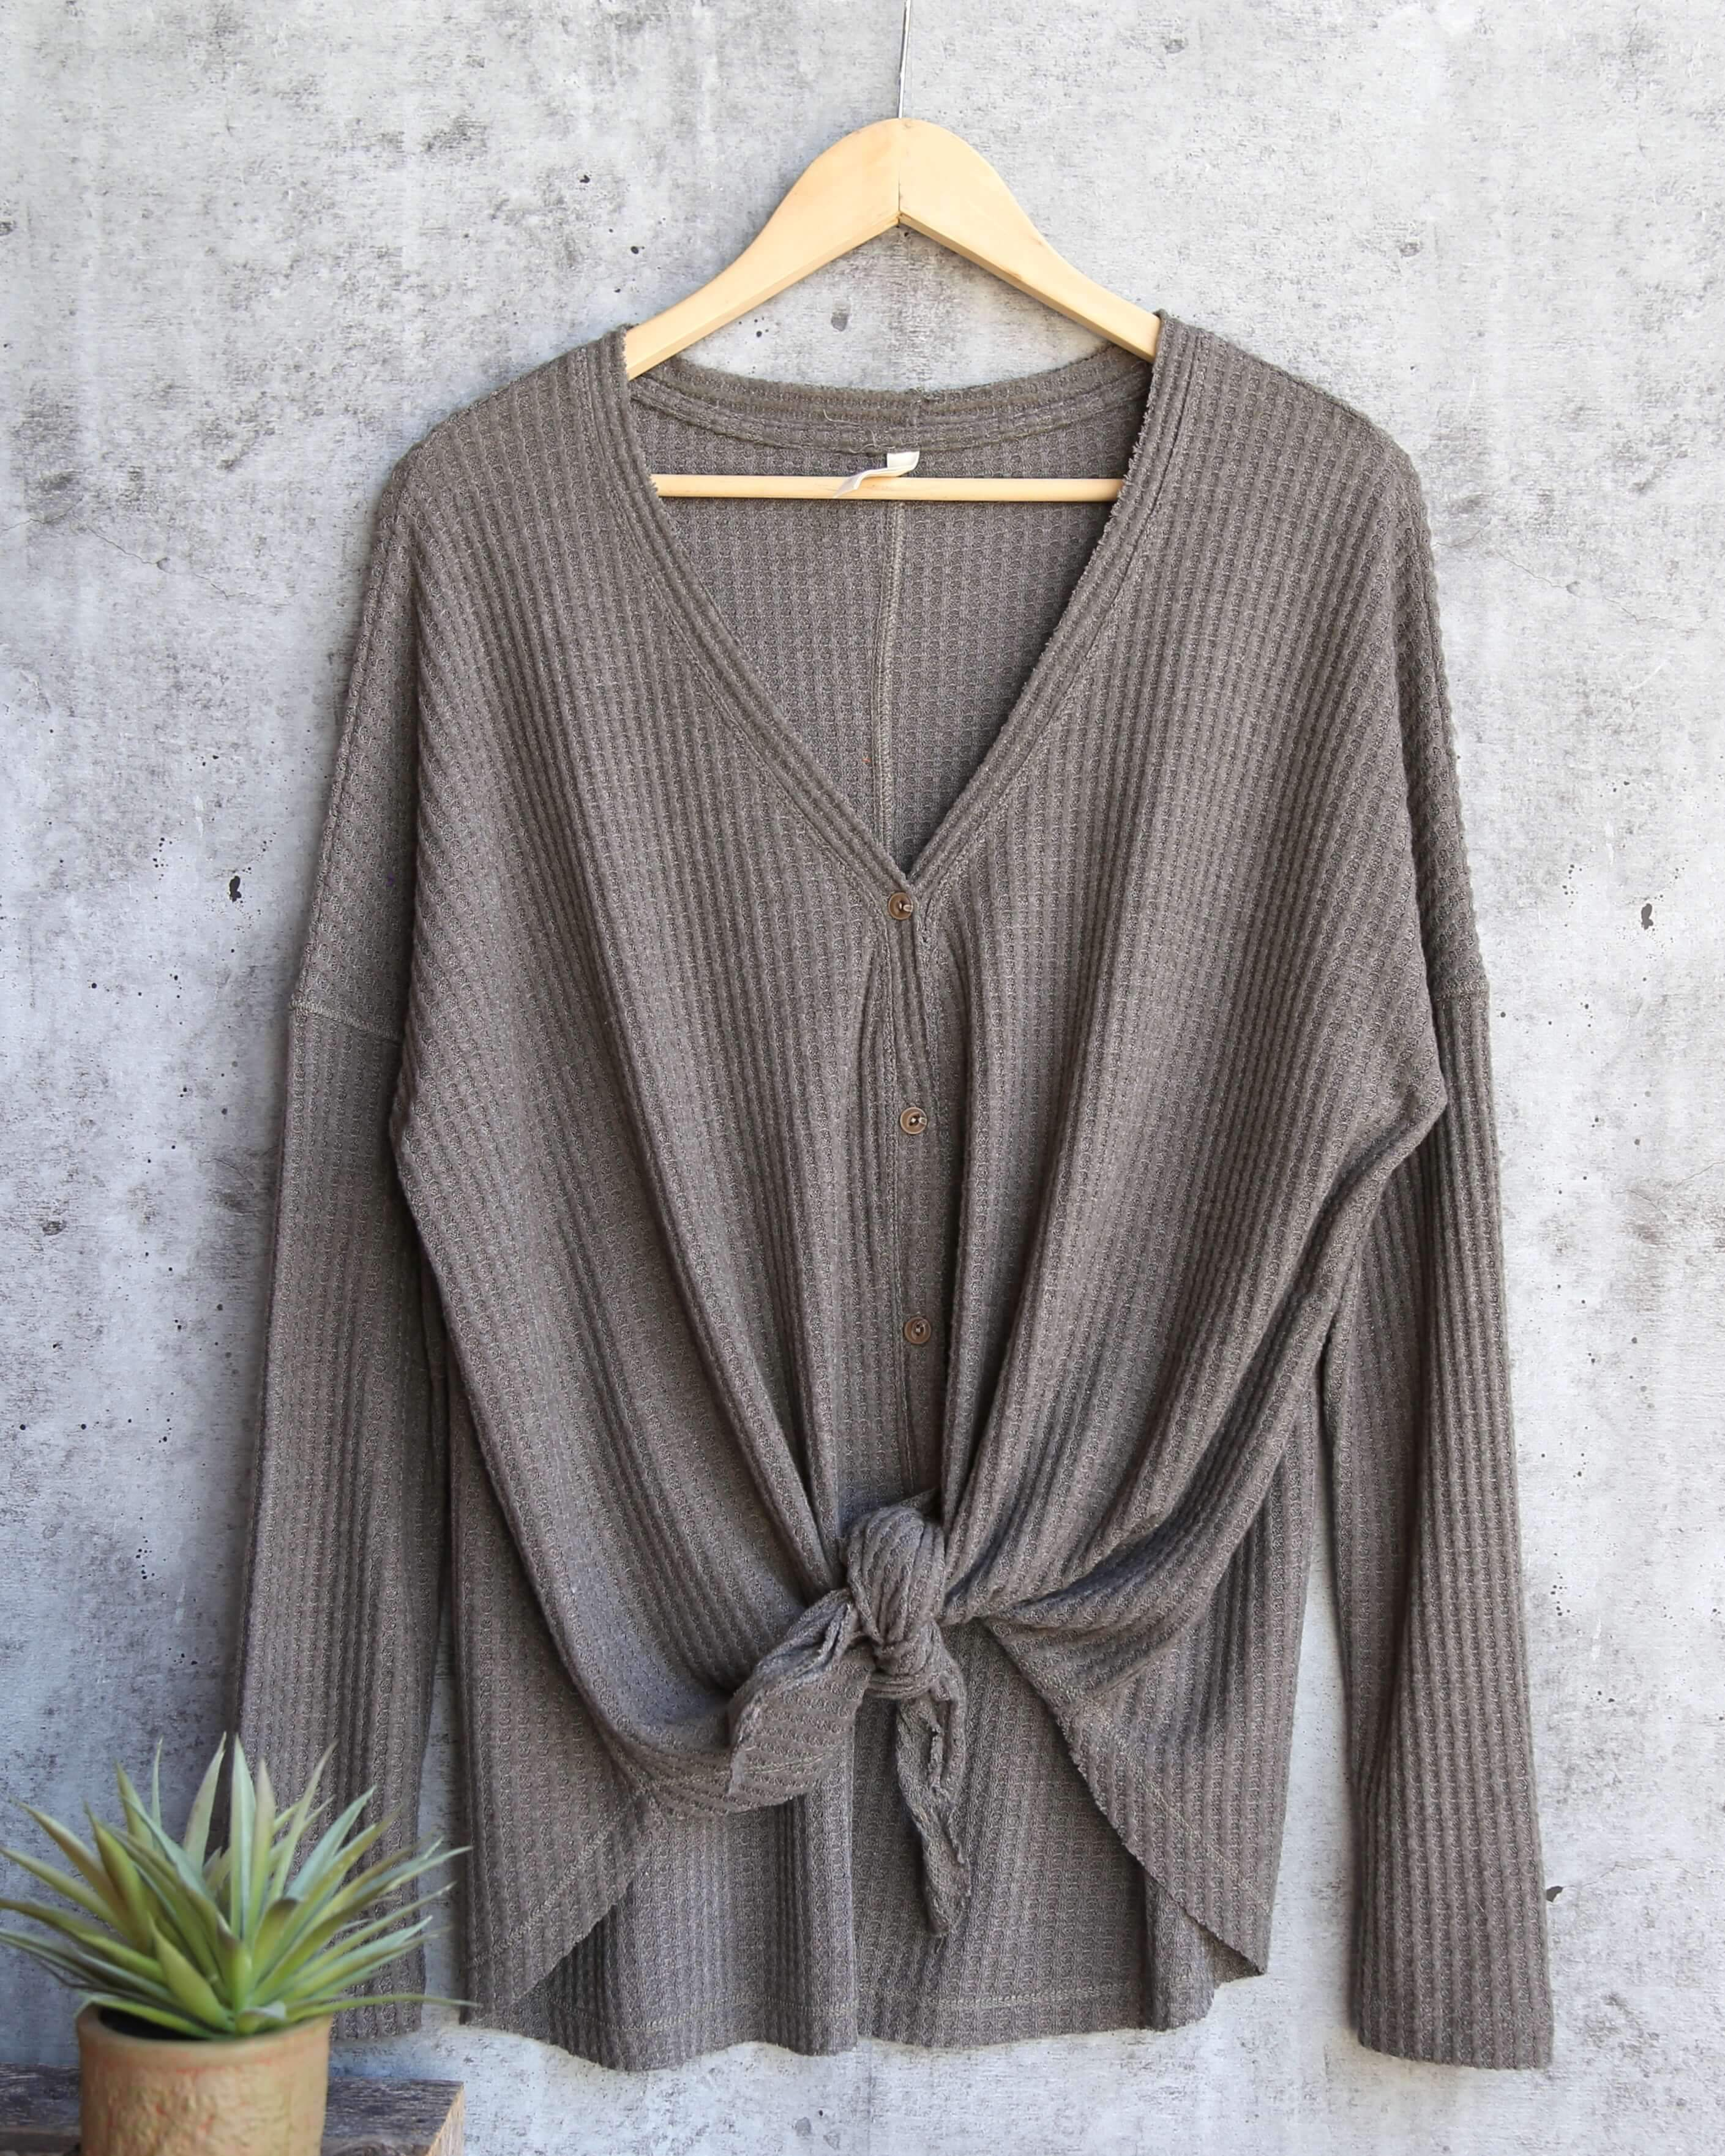 EVA - long sleeve thermal waffle knit v neck button down lightweight sweater  - olive 8924ed0cf